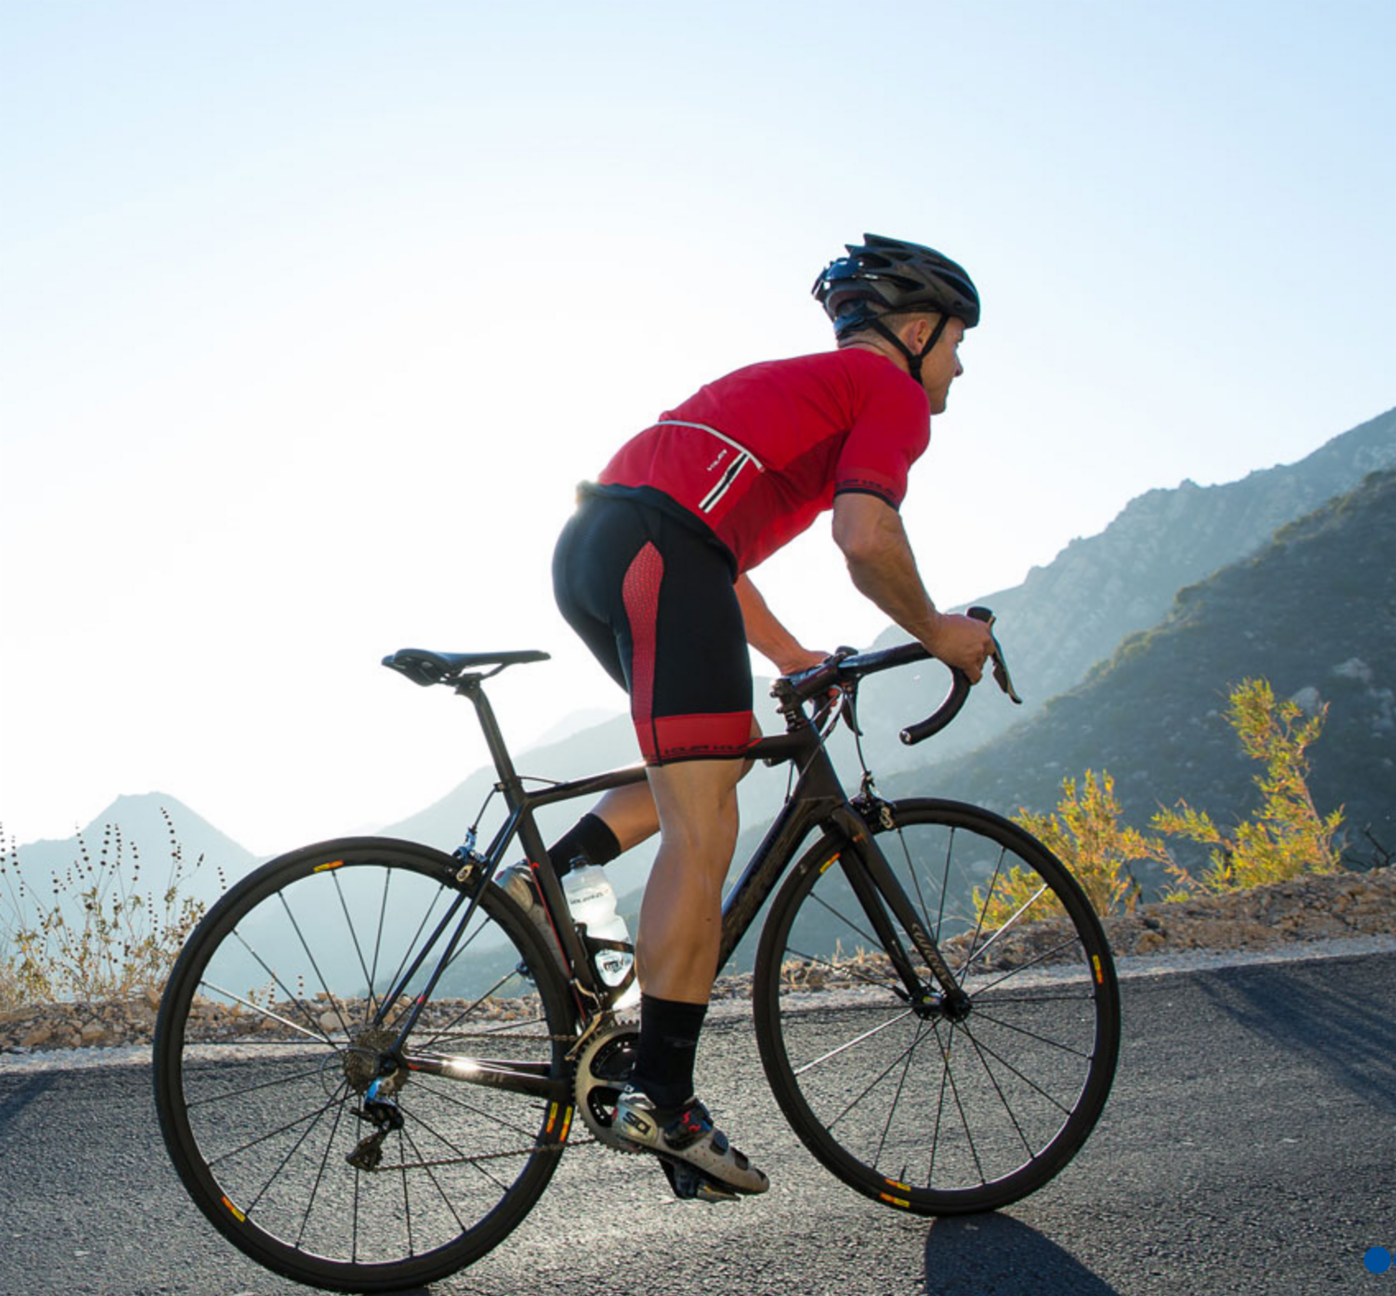 High quality bib shorts and jersey for all-day summer comfort